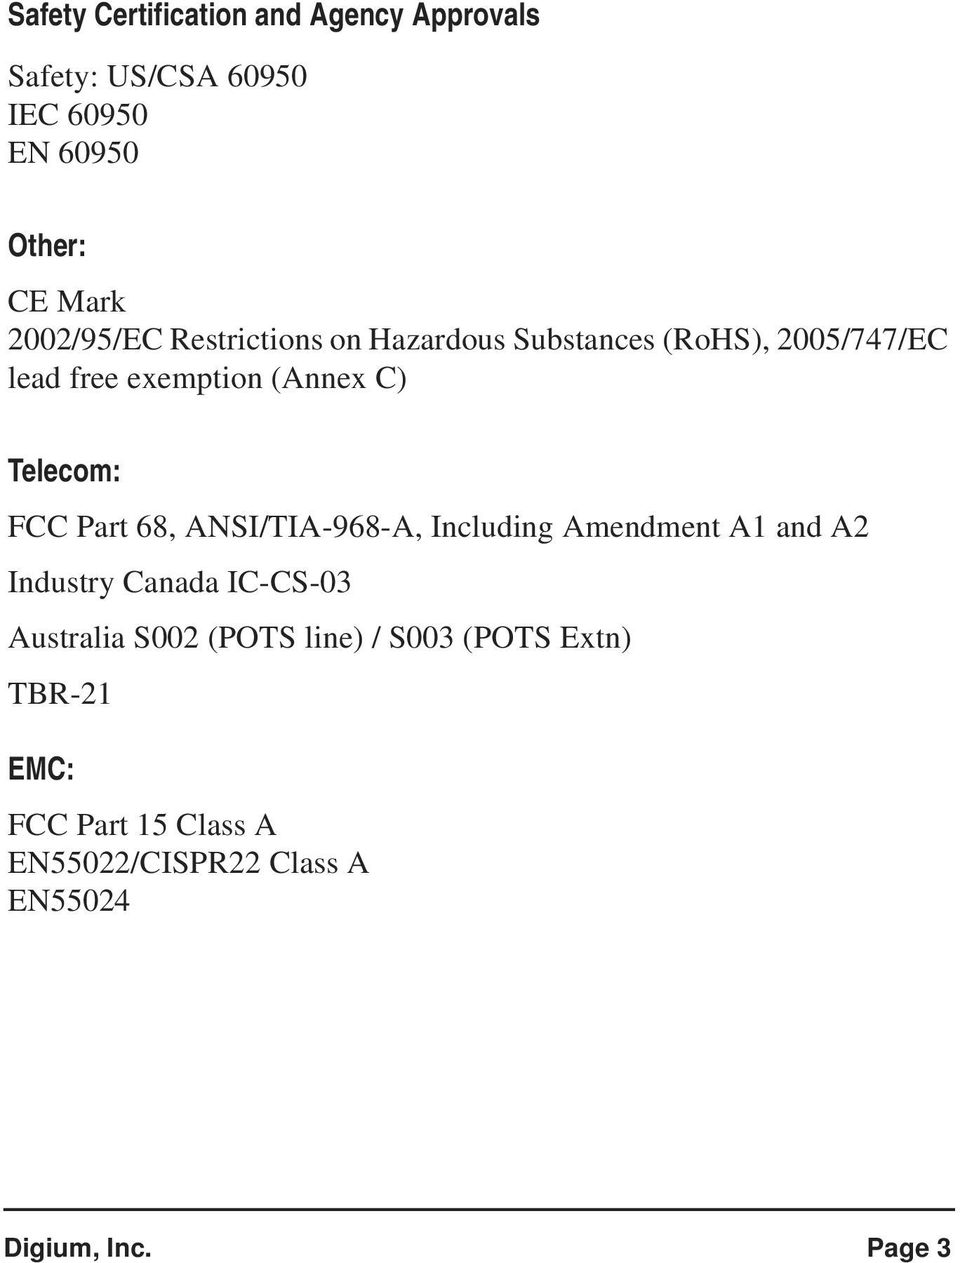 Telecom: FCC Part 68, ANSI/TIA-968-A, Including Amendment A1 and A2 Industry Canada IC-CS-03 Australia